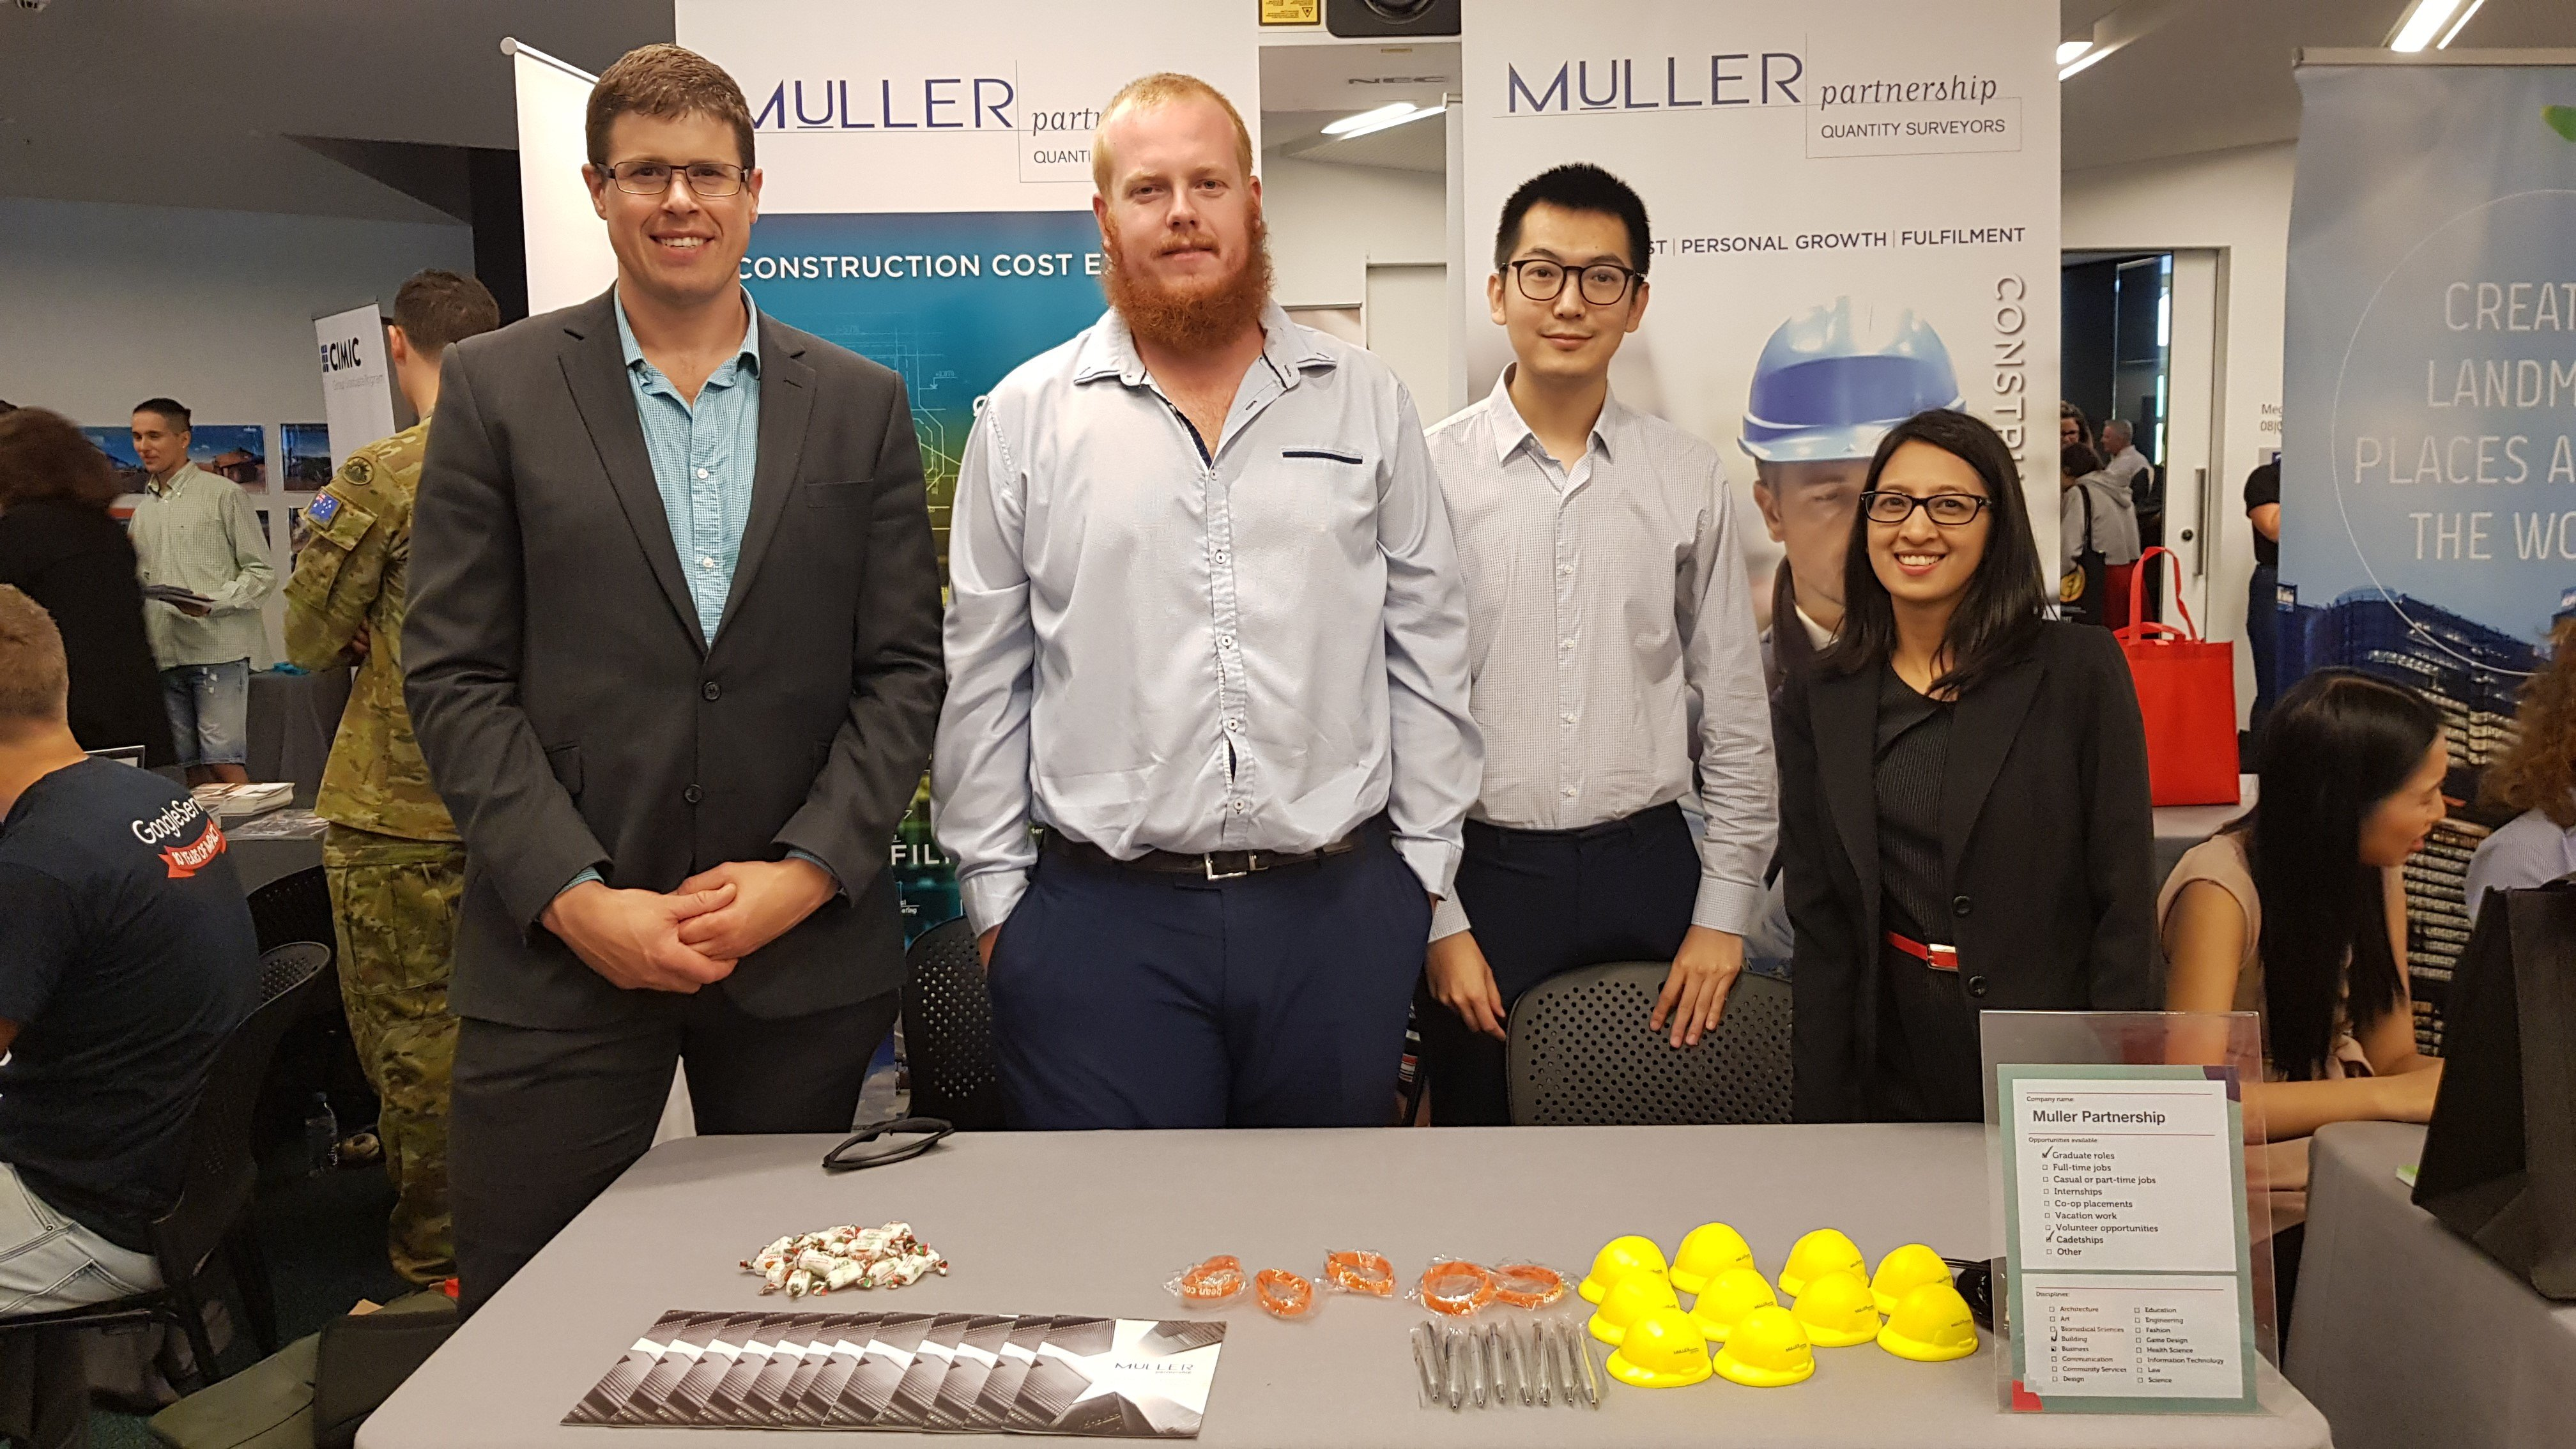 Muller Partnership's Melbourne staff: Cyrrus, Luke, Alex and Nirvana attended the first RMIT Indigenous Career Fair in collaboration with Ngarara Willim Centre to support Aboriginal and Torres Strait Islander people.  Muller Partnership joined a number of other companies at the fair to communicate and provide career opportunities to talented indigenous students. Muller Partnership is excited to be working to support a diverse workforce and make a positive impact across our industry.